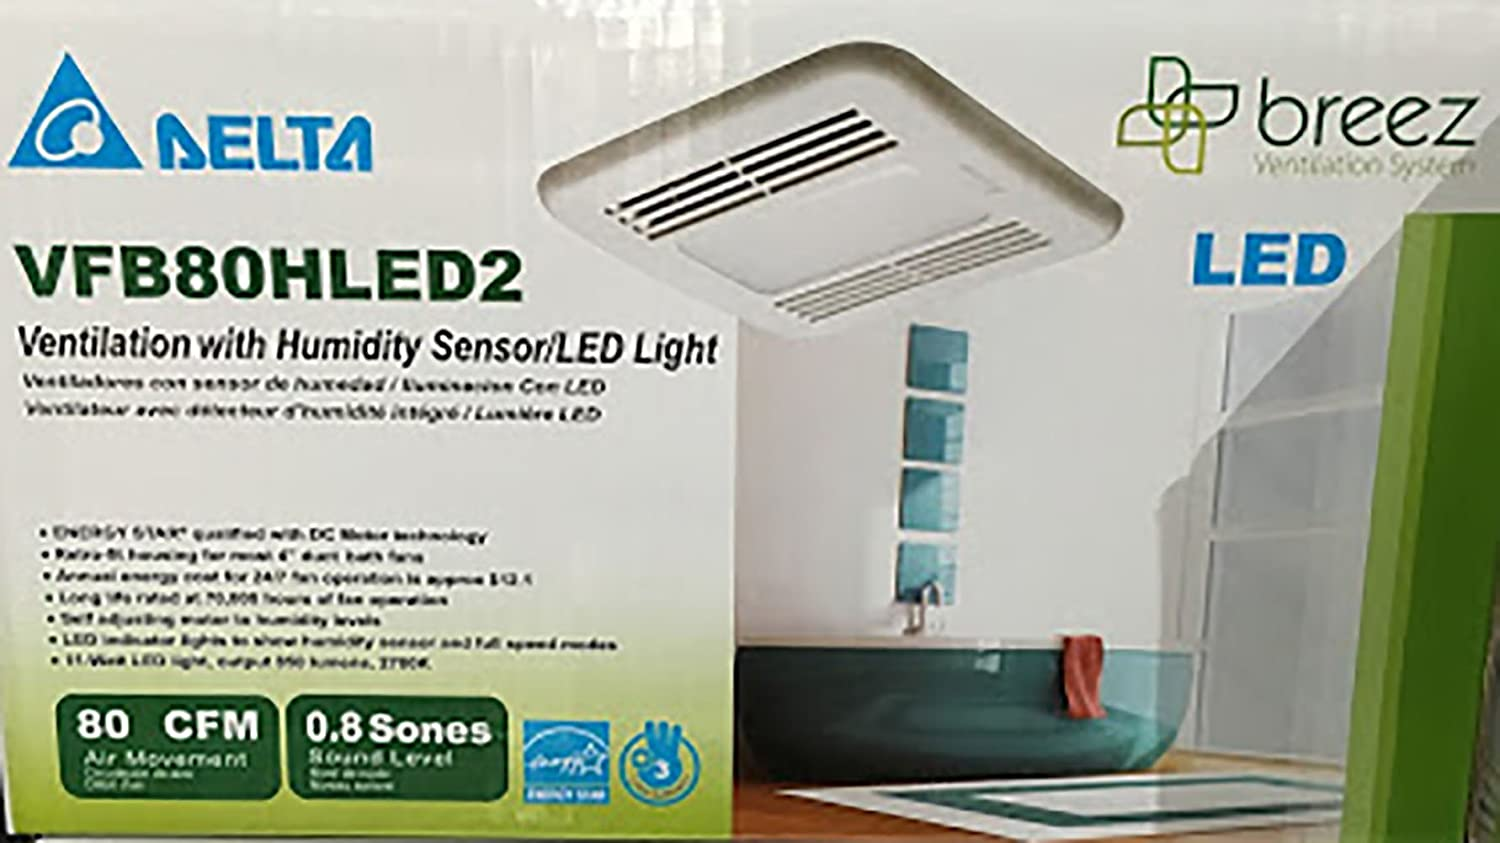 If your bathroom exhaust fan has become ear splitting over time it s - Amazon Com Delta Breez Vfb80hled2 Ventilation With Humidity Sensor Led Light Health Personal Care